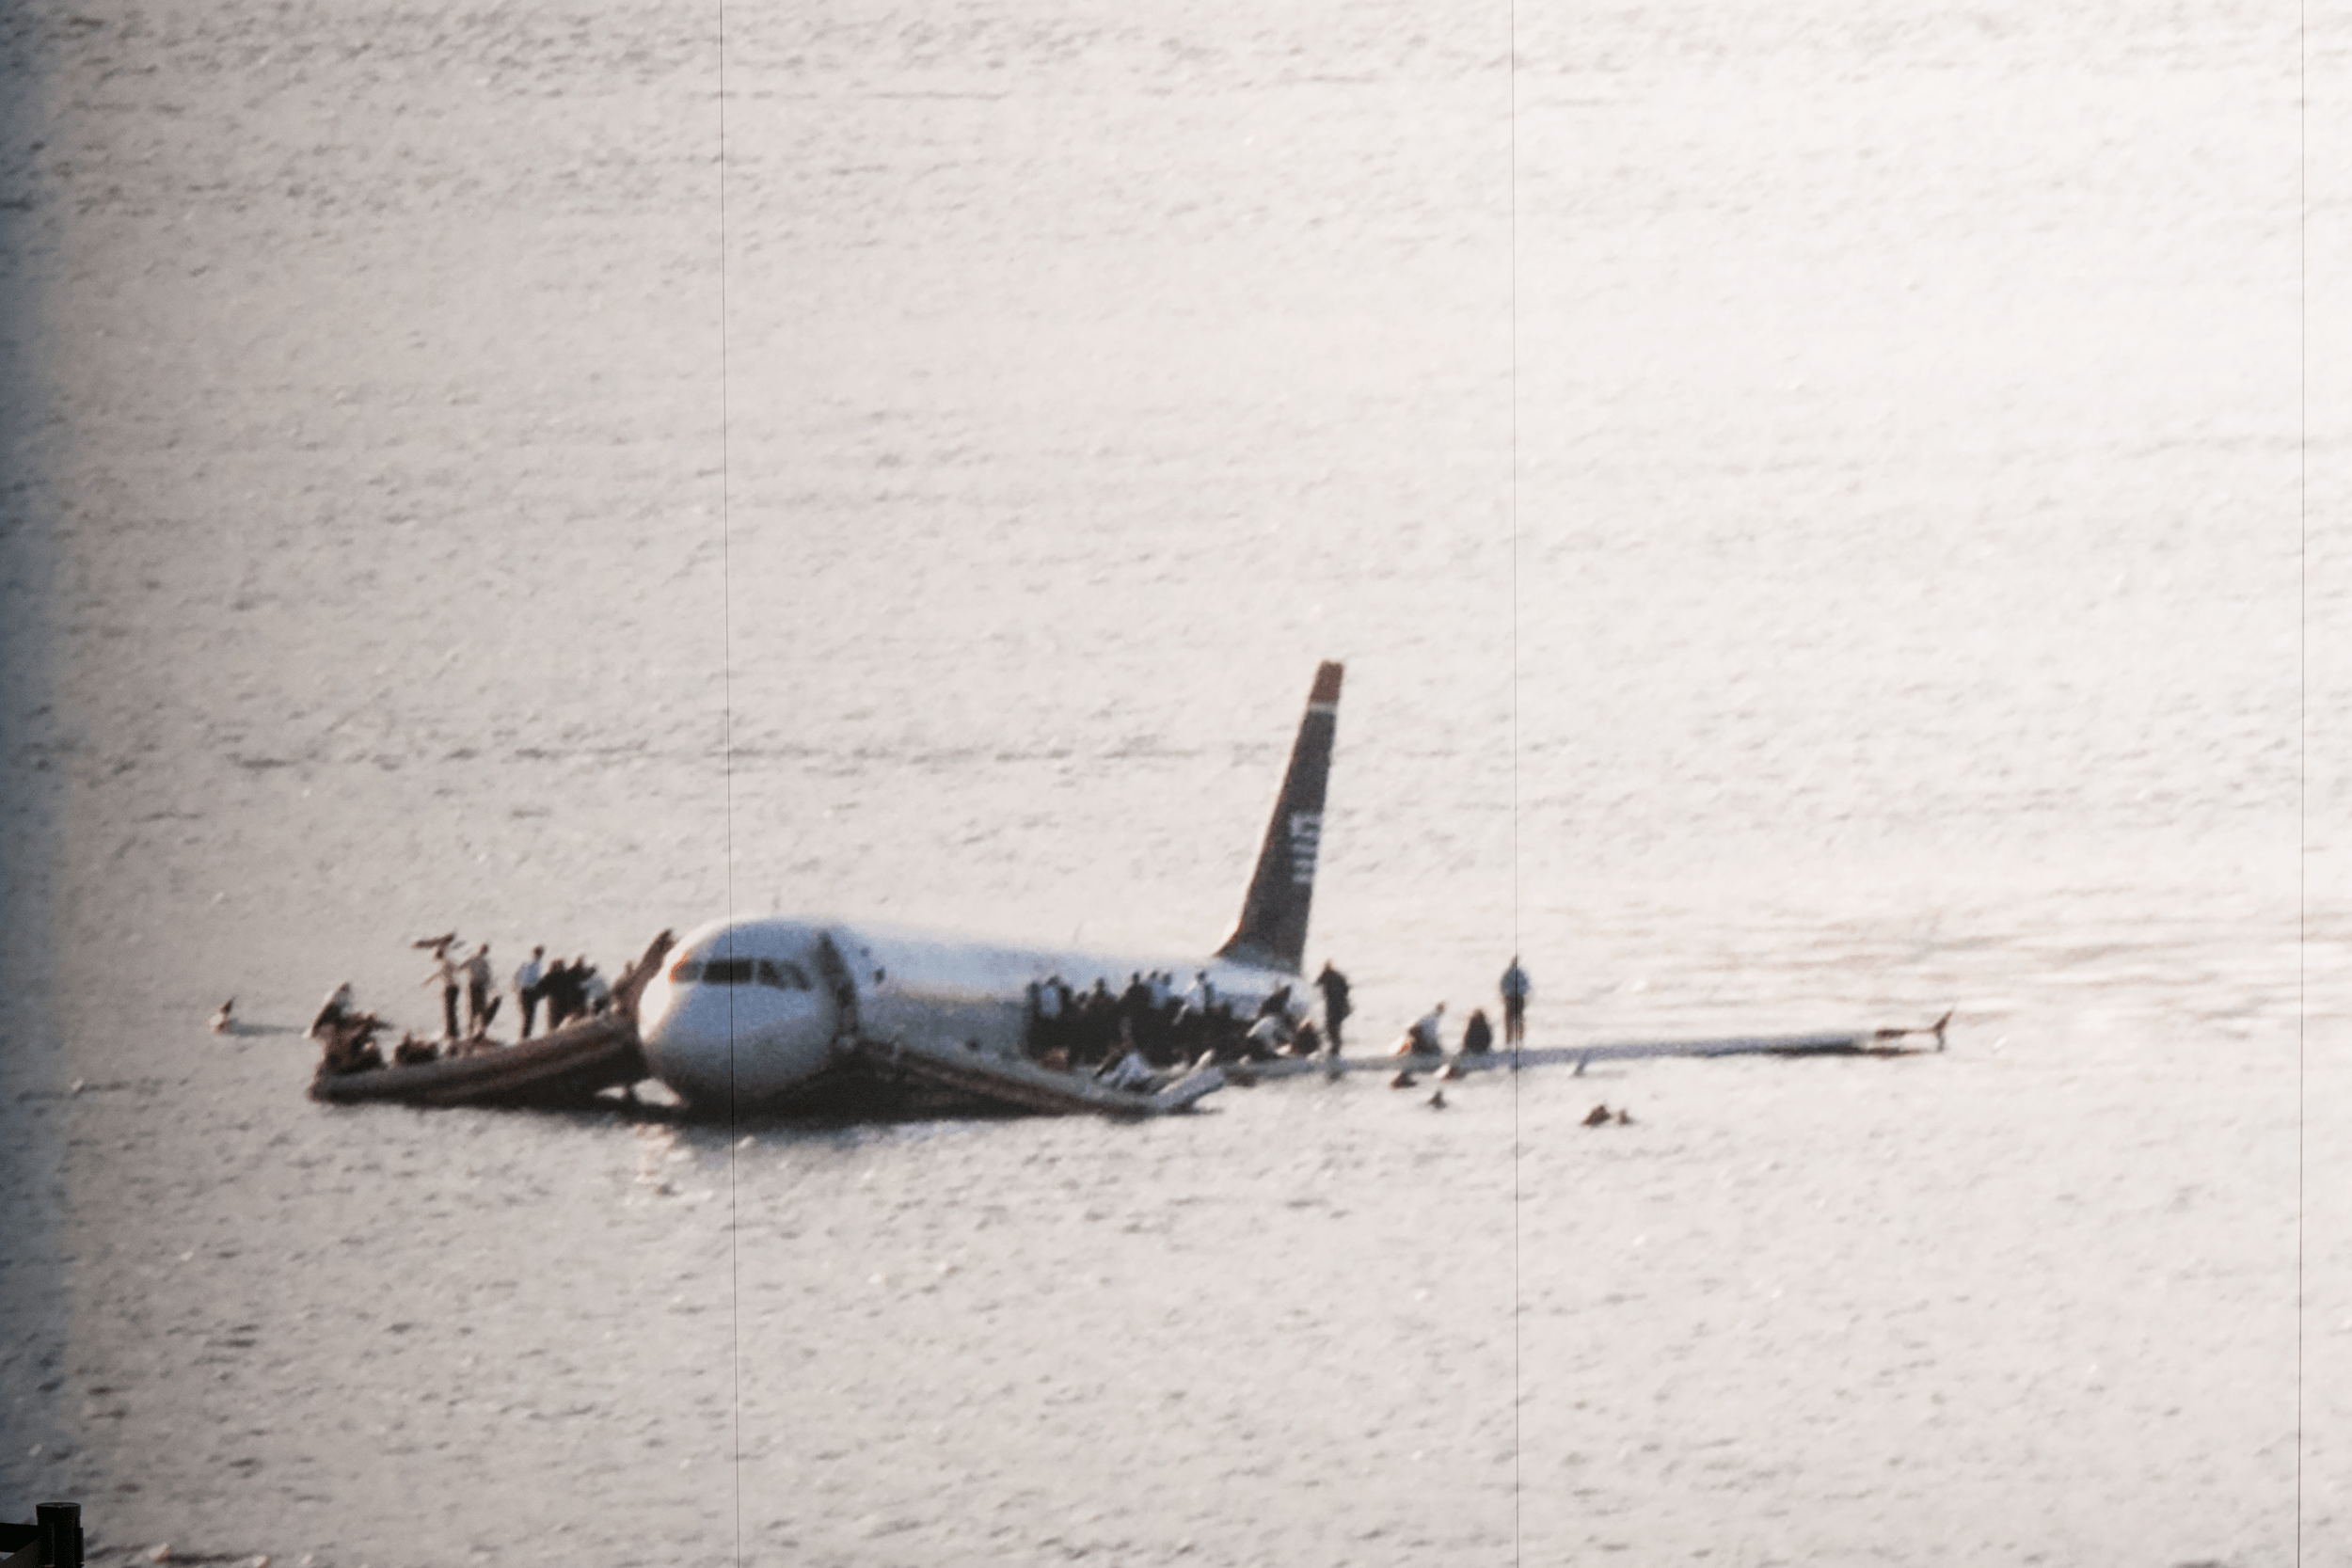 """Just three minutes after both engines had lost power, the plane hit the water near midtown Manhattan. Several passengers suffered injuries, a few of them severe, but only one passenger required overnight hospitalization.   Original picture """"Plane crash into Hudson River"""" by Greg Lam Pak Ng, Flickr, licensed under Creative Commons CC BY 2.0, cropped."""